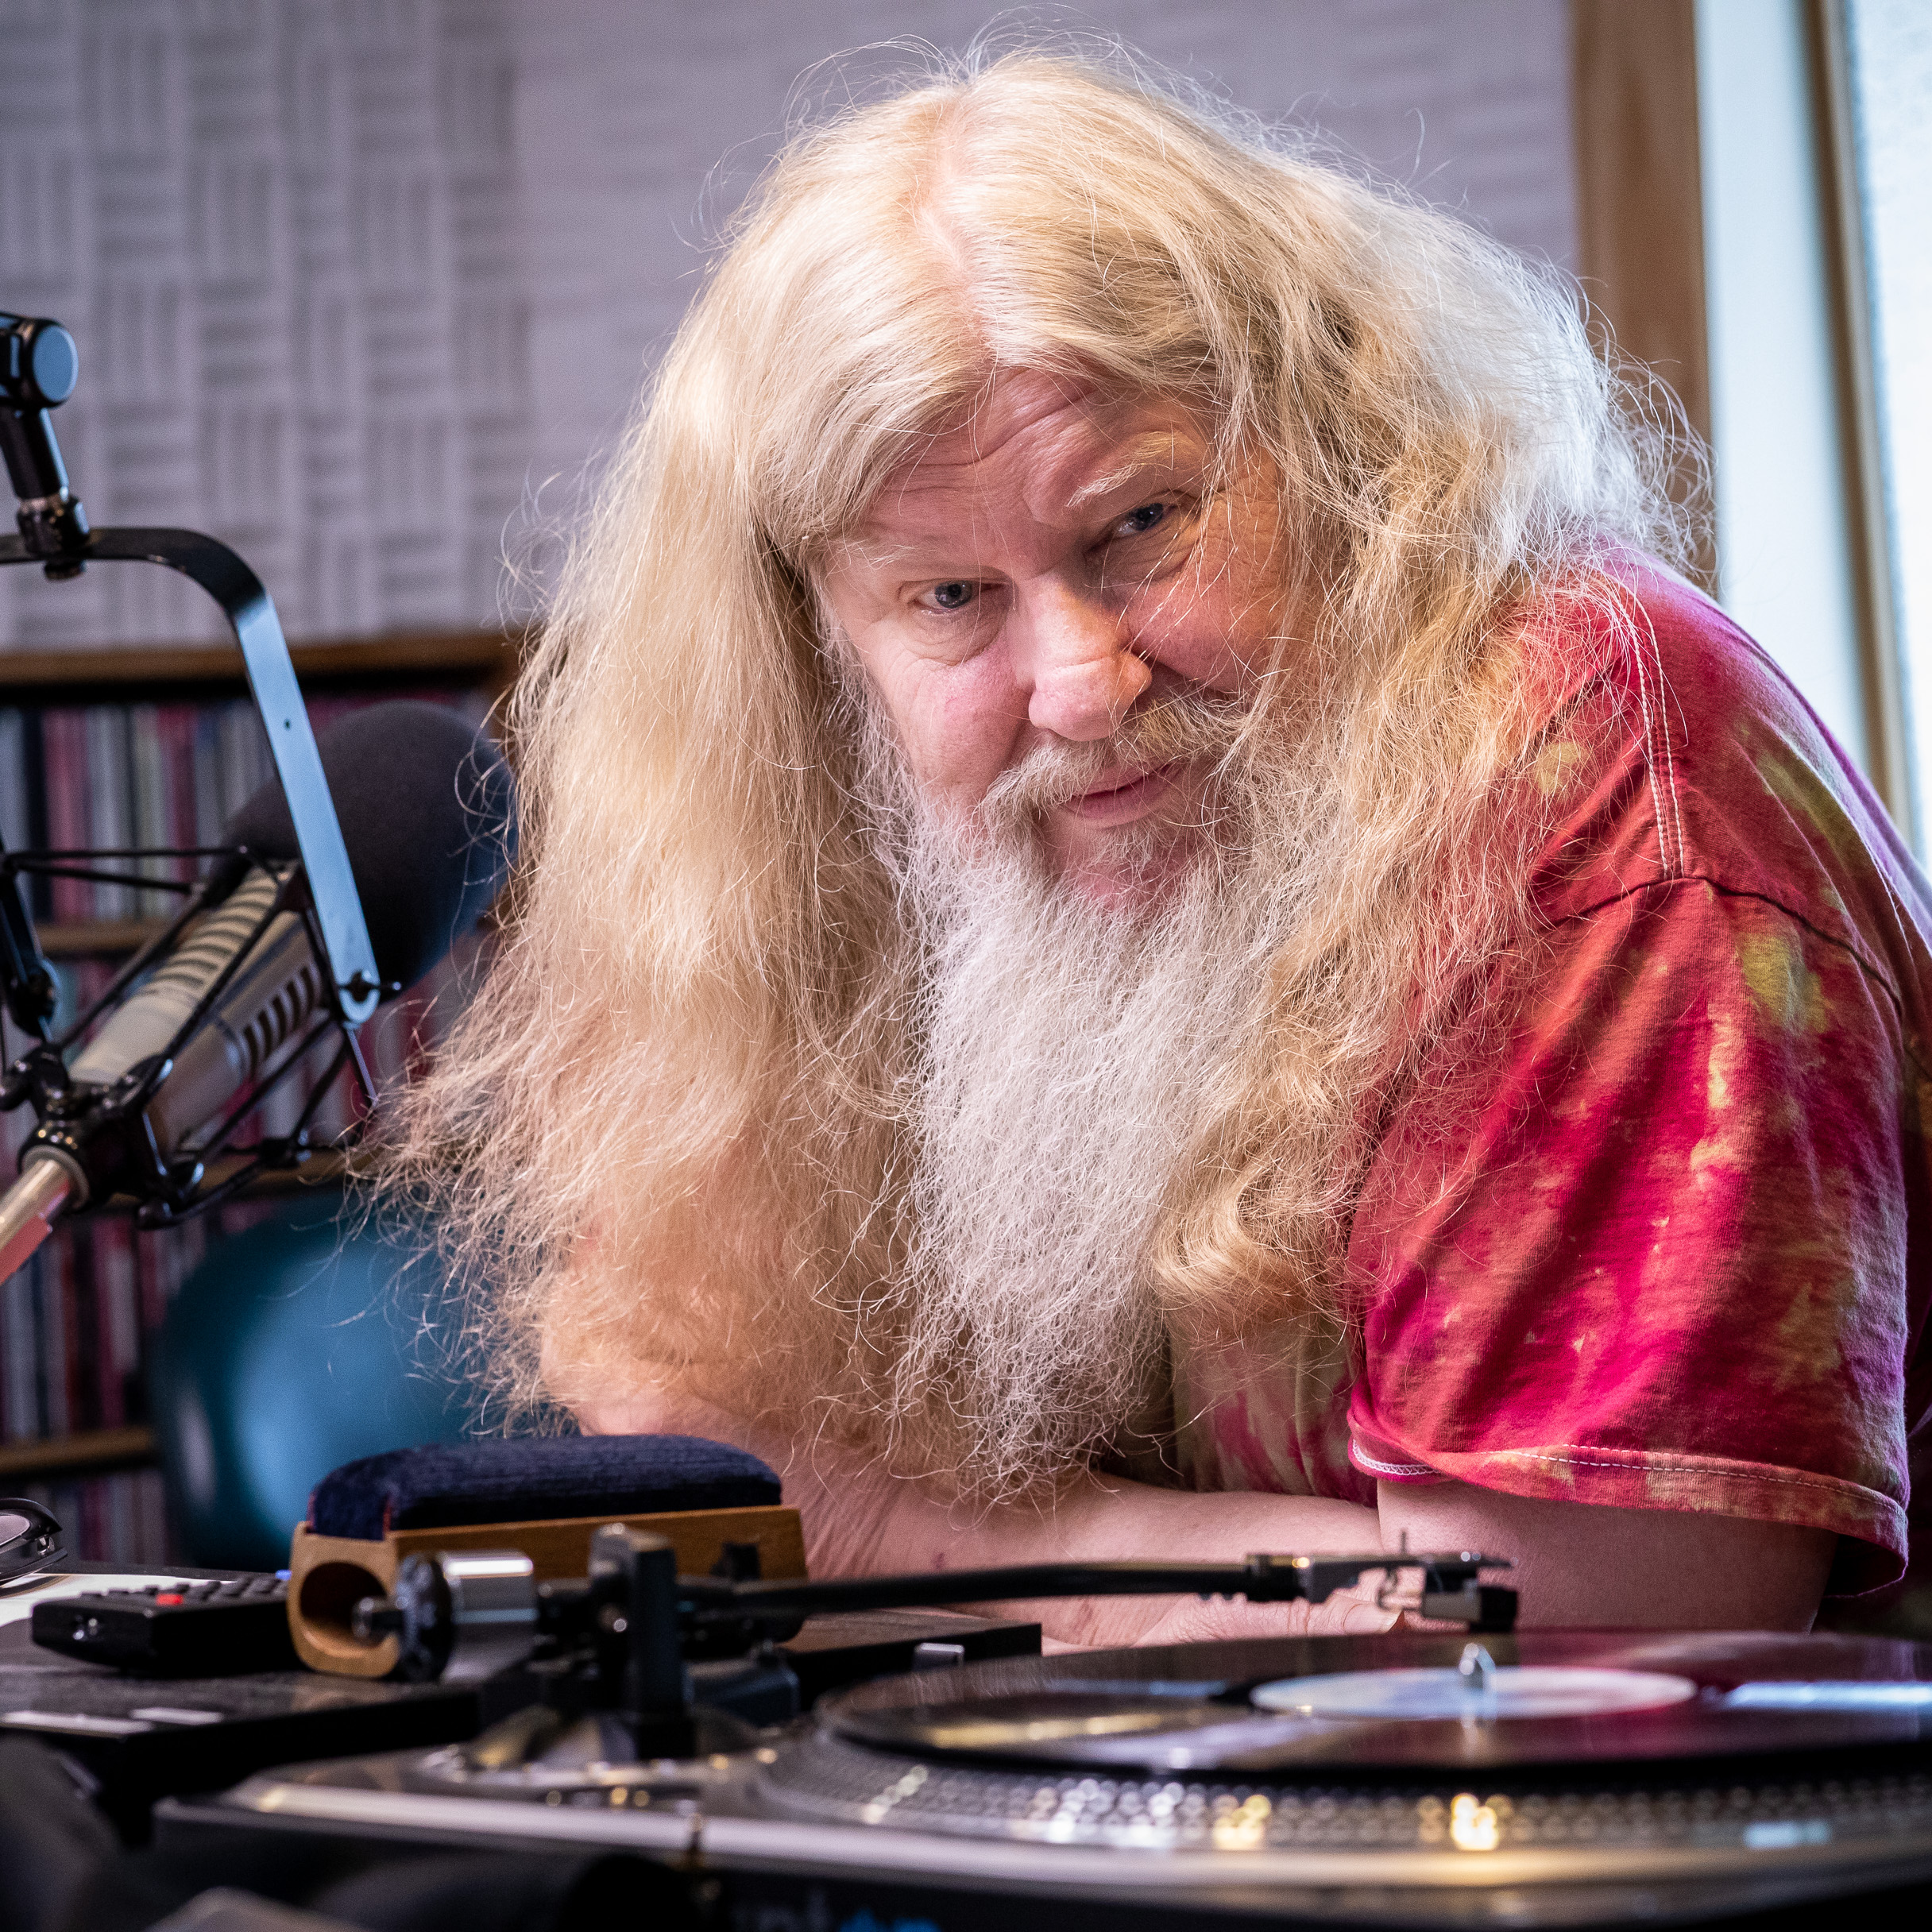 Dave Coler looks at the camera from behind a radio microphone and turntable.